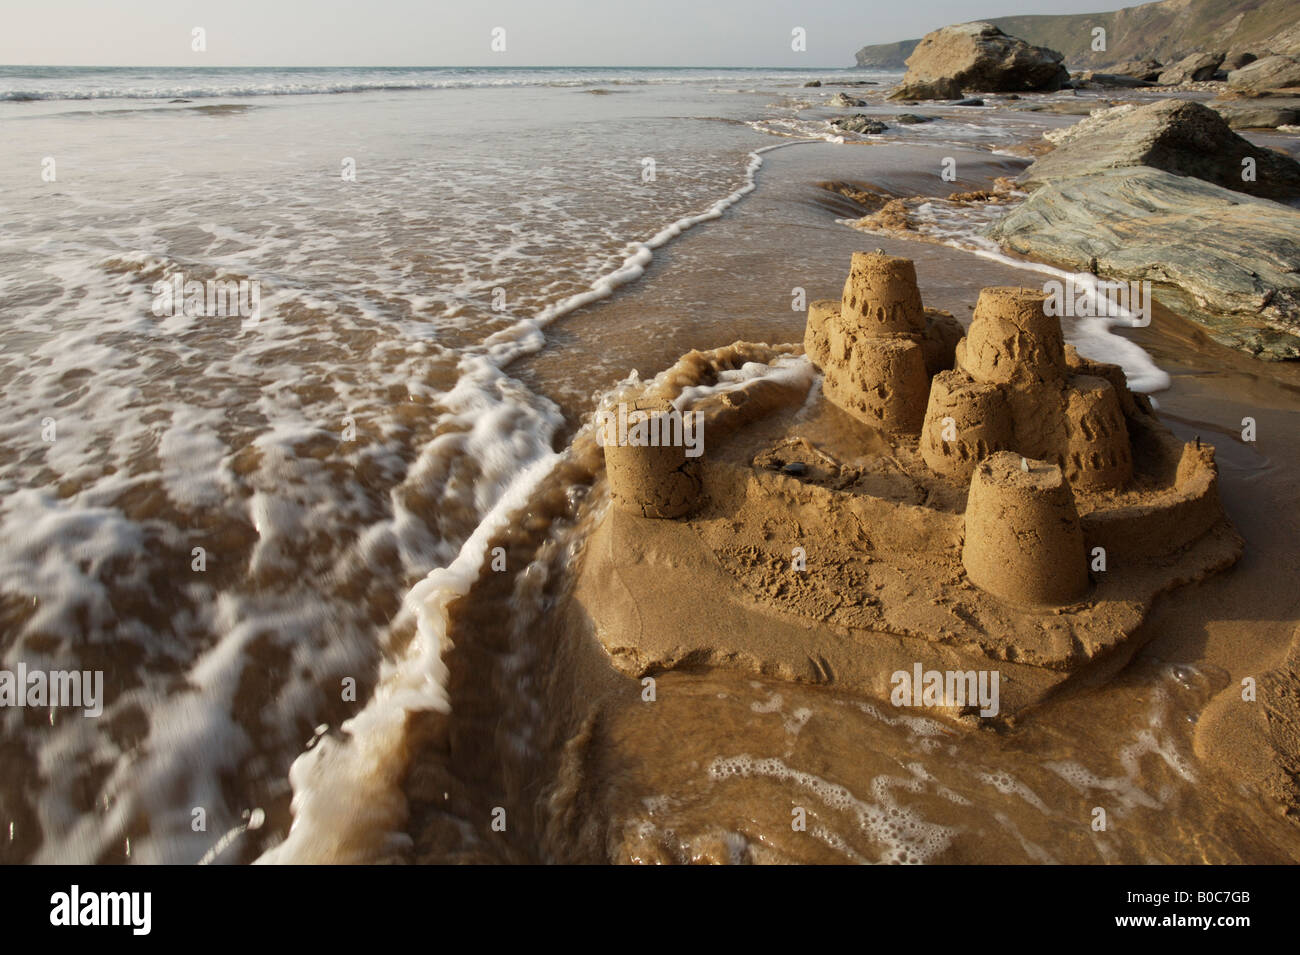 Image result for sand castles being washed away